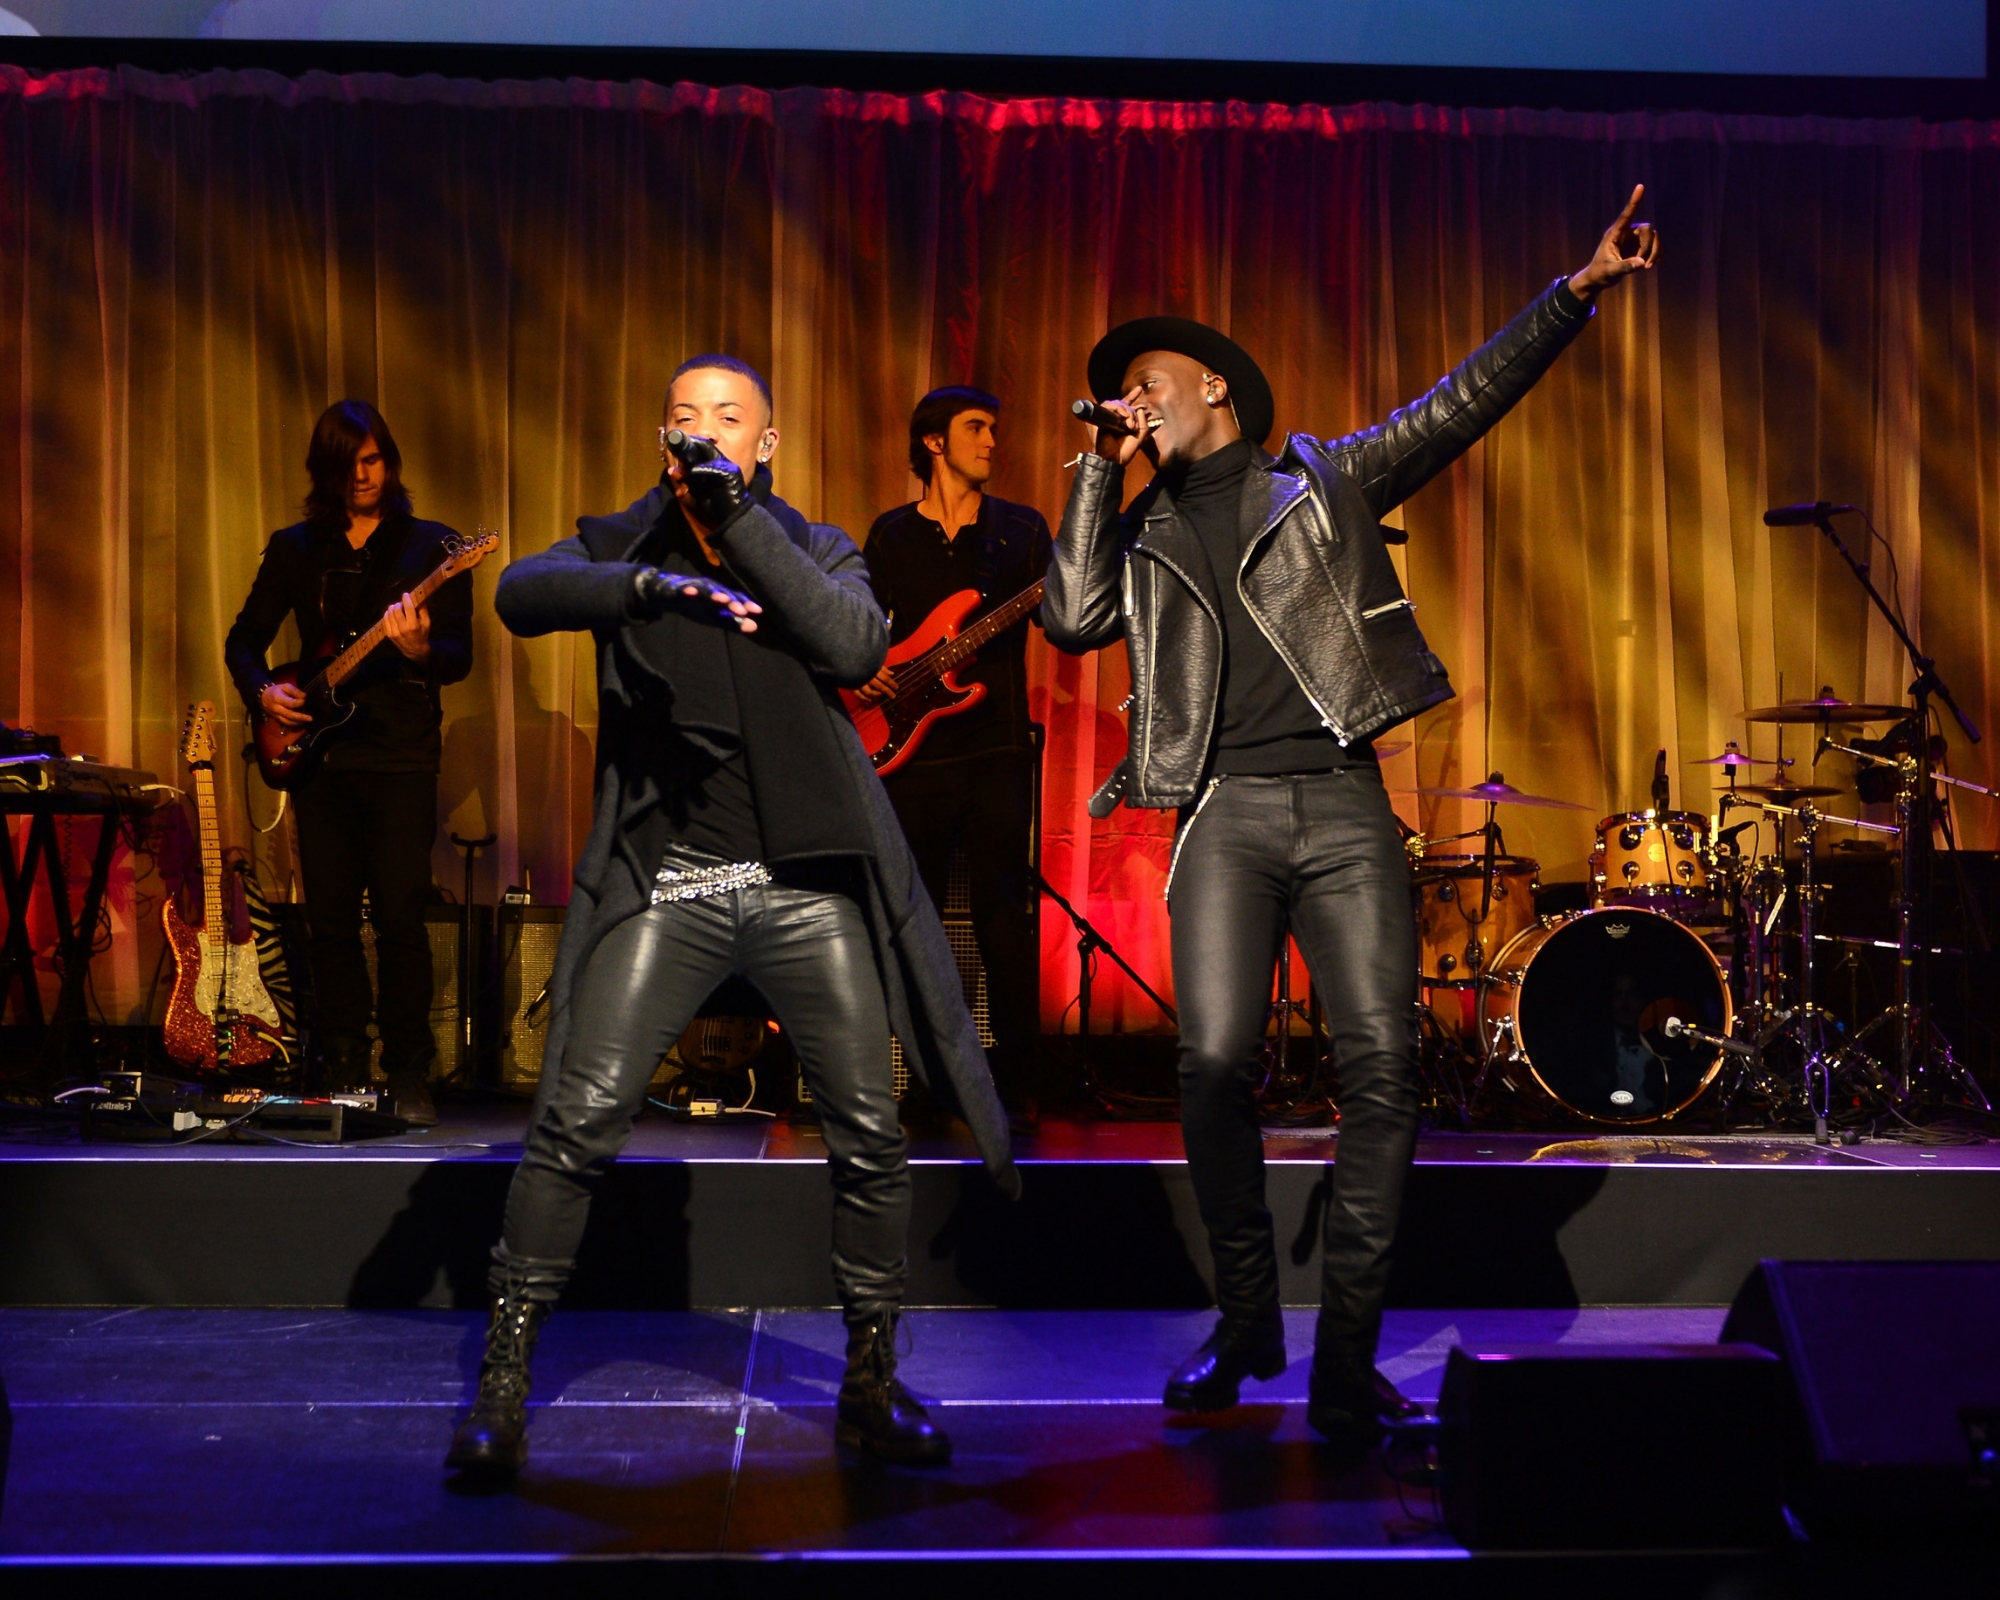 Nico & Vinz perform at the 2014 UNICEF Snowflake Ball ©2014 Stephen Lovekin/Getty Images for UNICEF